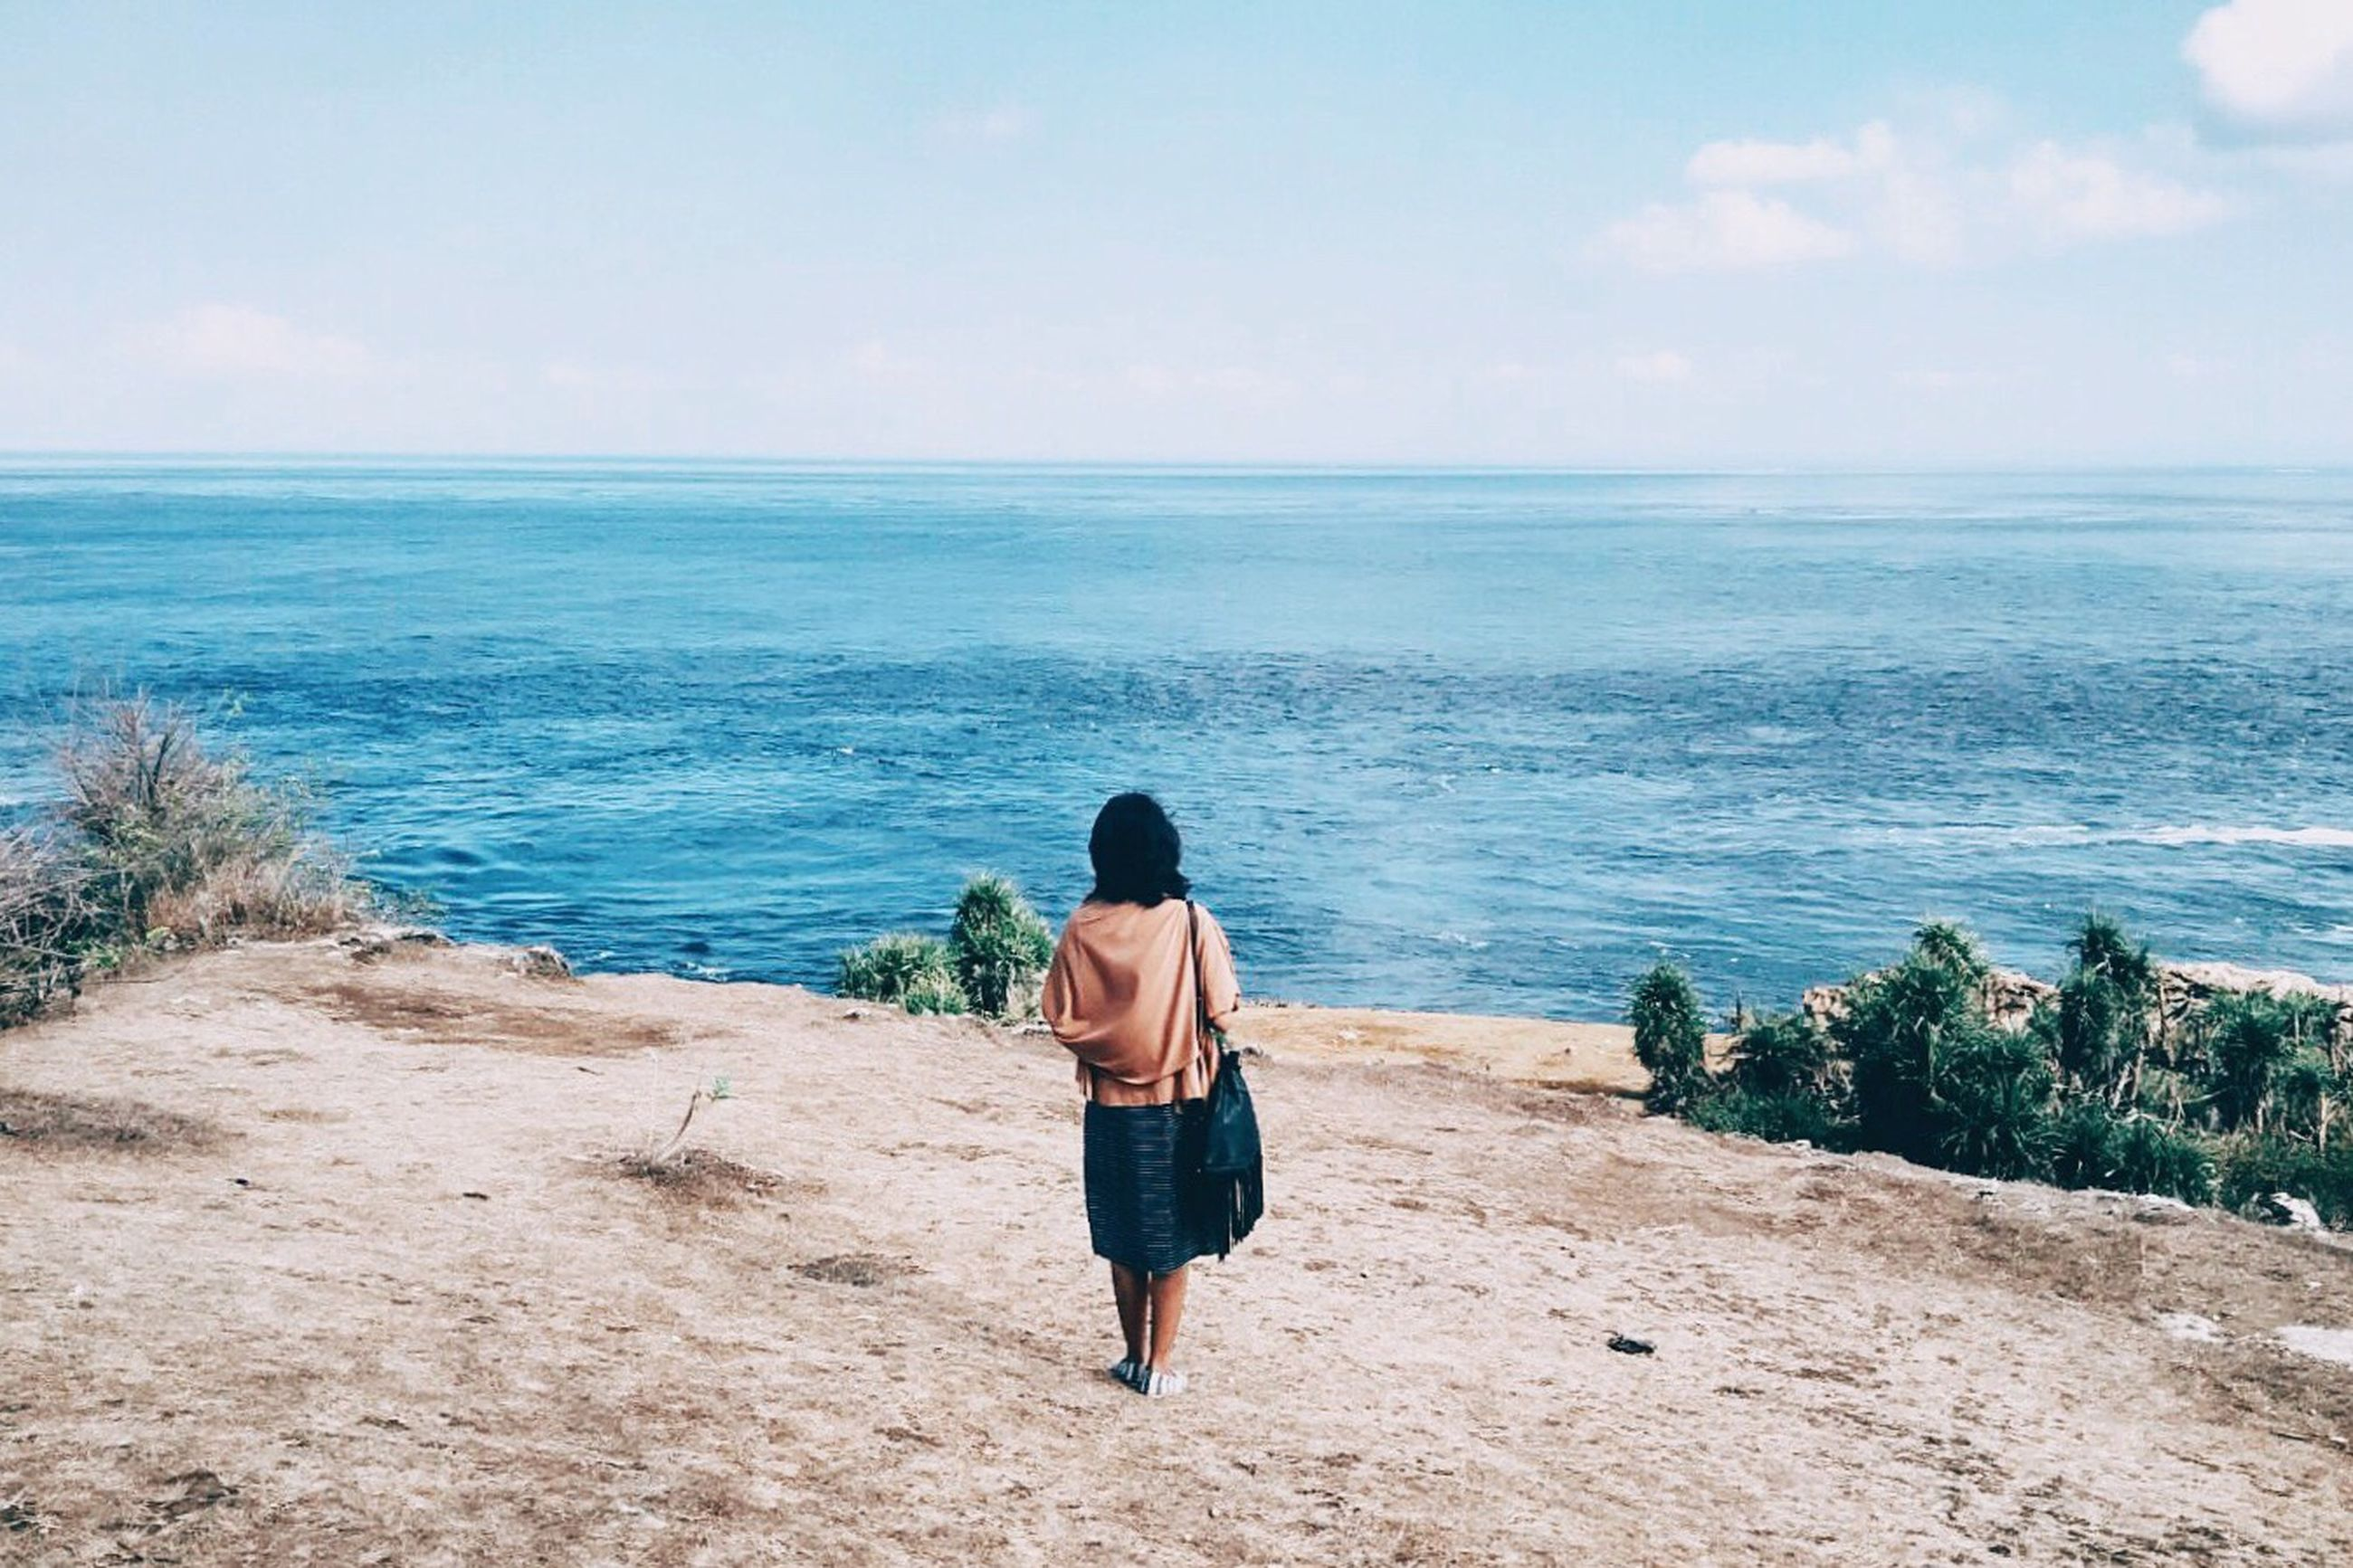 sea, rear view, horizon over water, water, full length, sky, lifestyles, beach, leisure activity, beauty in nature, tranquility, tranquil scene, scenics, casual clothing, shore, nature, standing, person